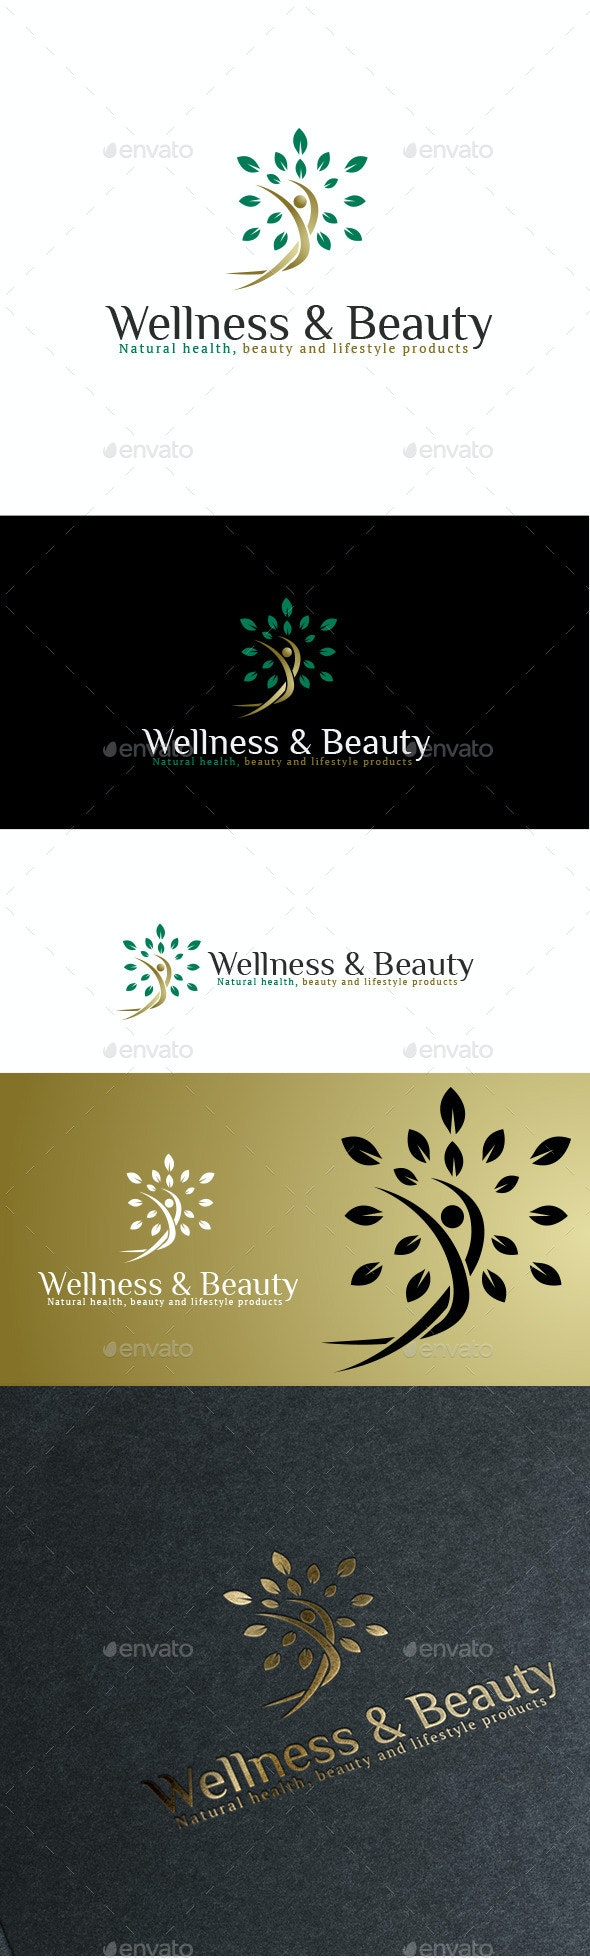 Naturals Wellness & Beauty Logo - Nature Logo Templates